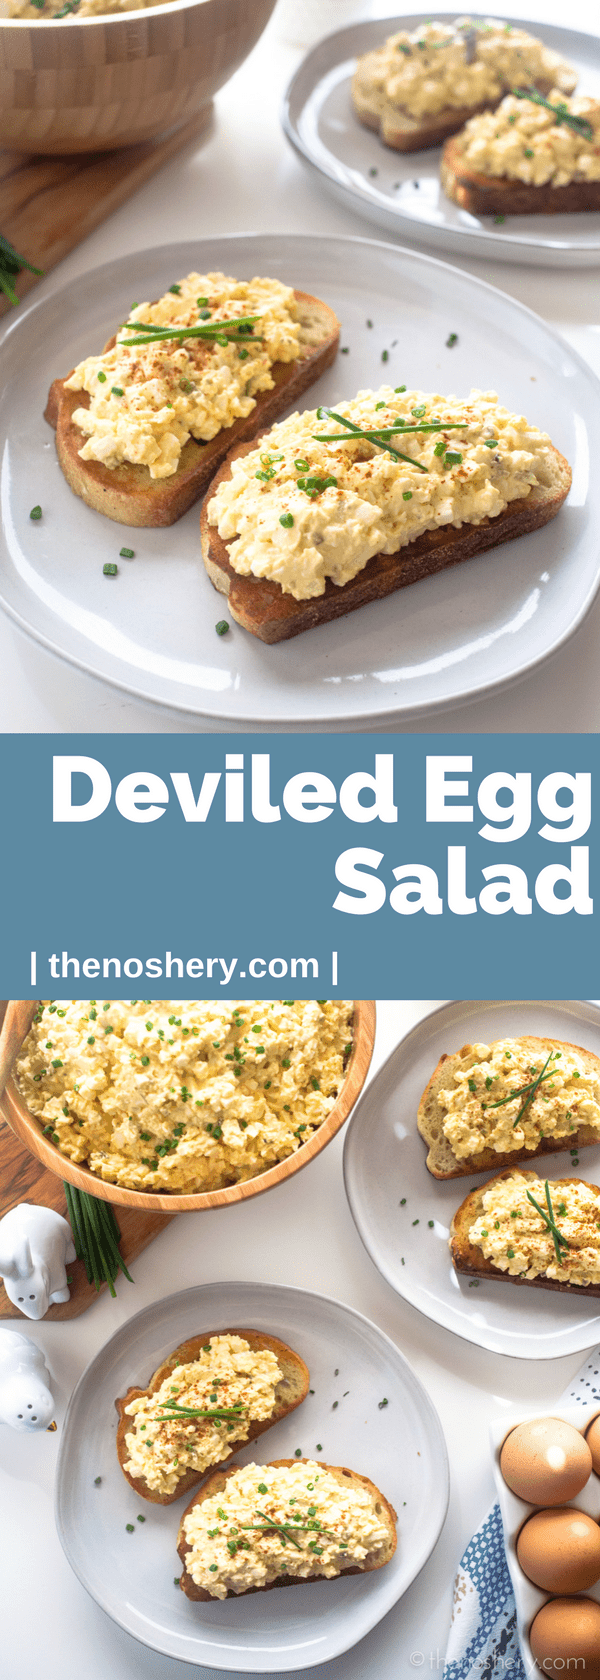 Deviled Egg Salad | Enjoy this creamy deviled egg salad on toast, with crackers, crispy vegetables, or as a sandwich. All that matters is that you make it and eat it! | The Noshery